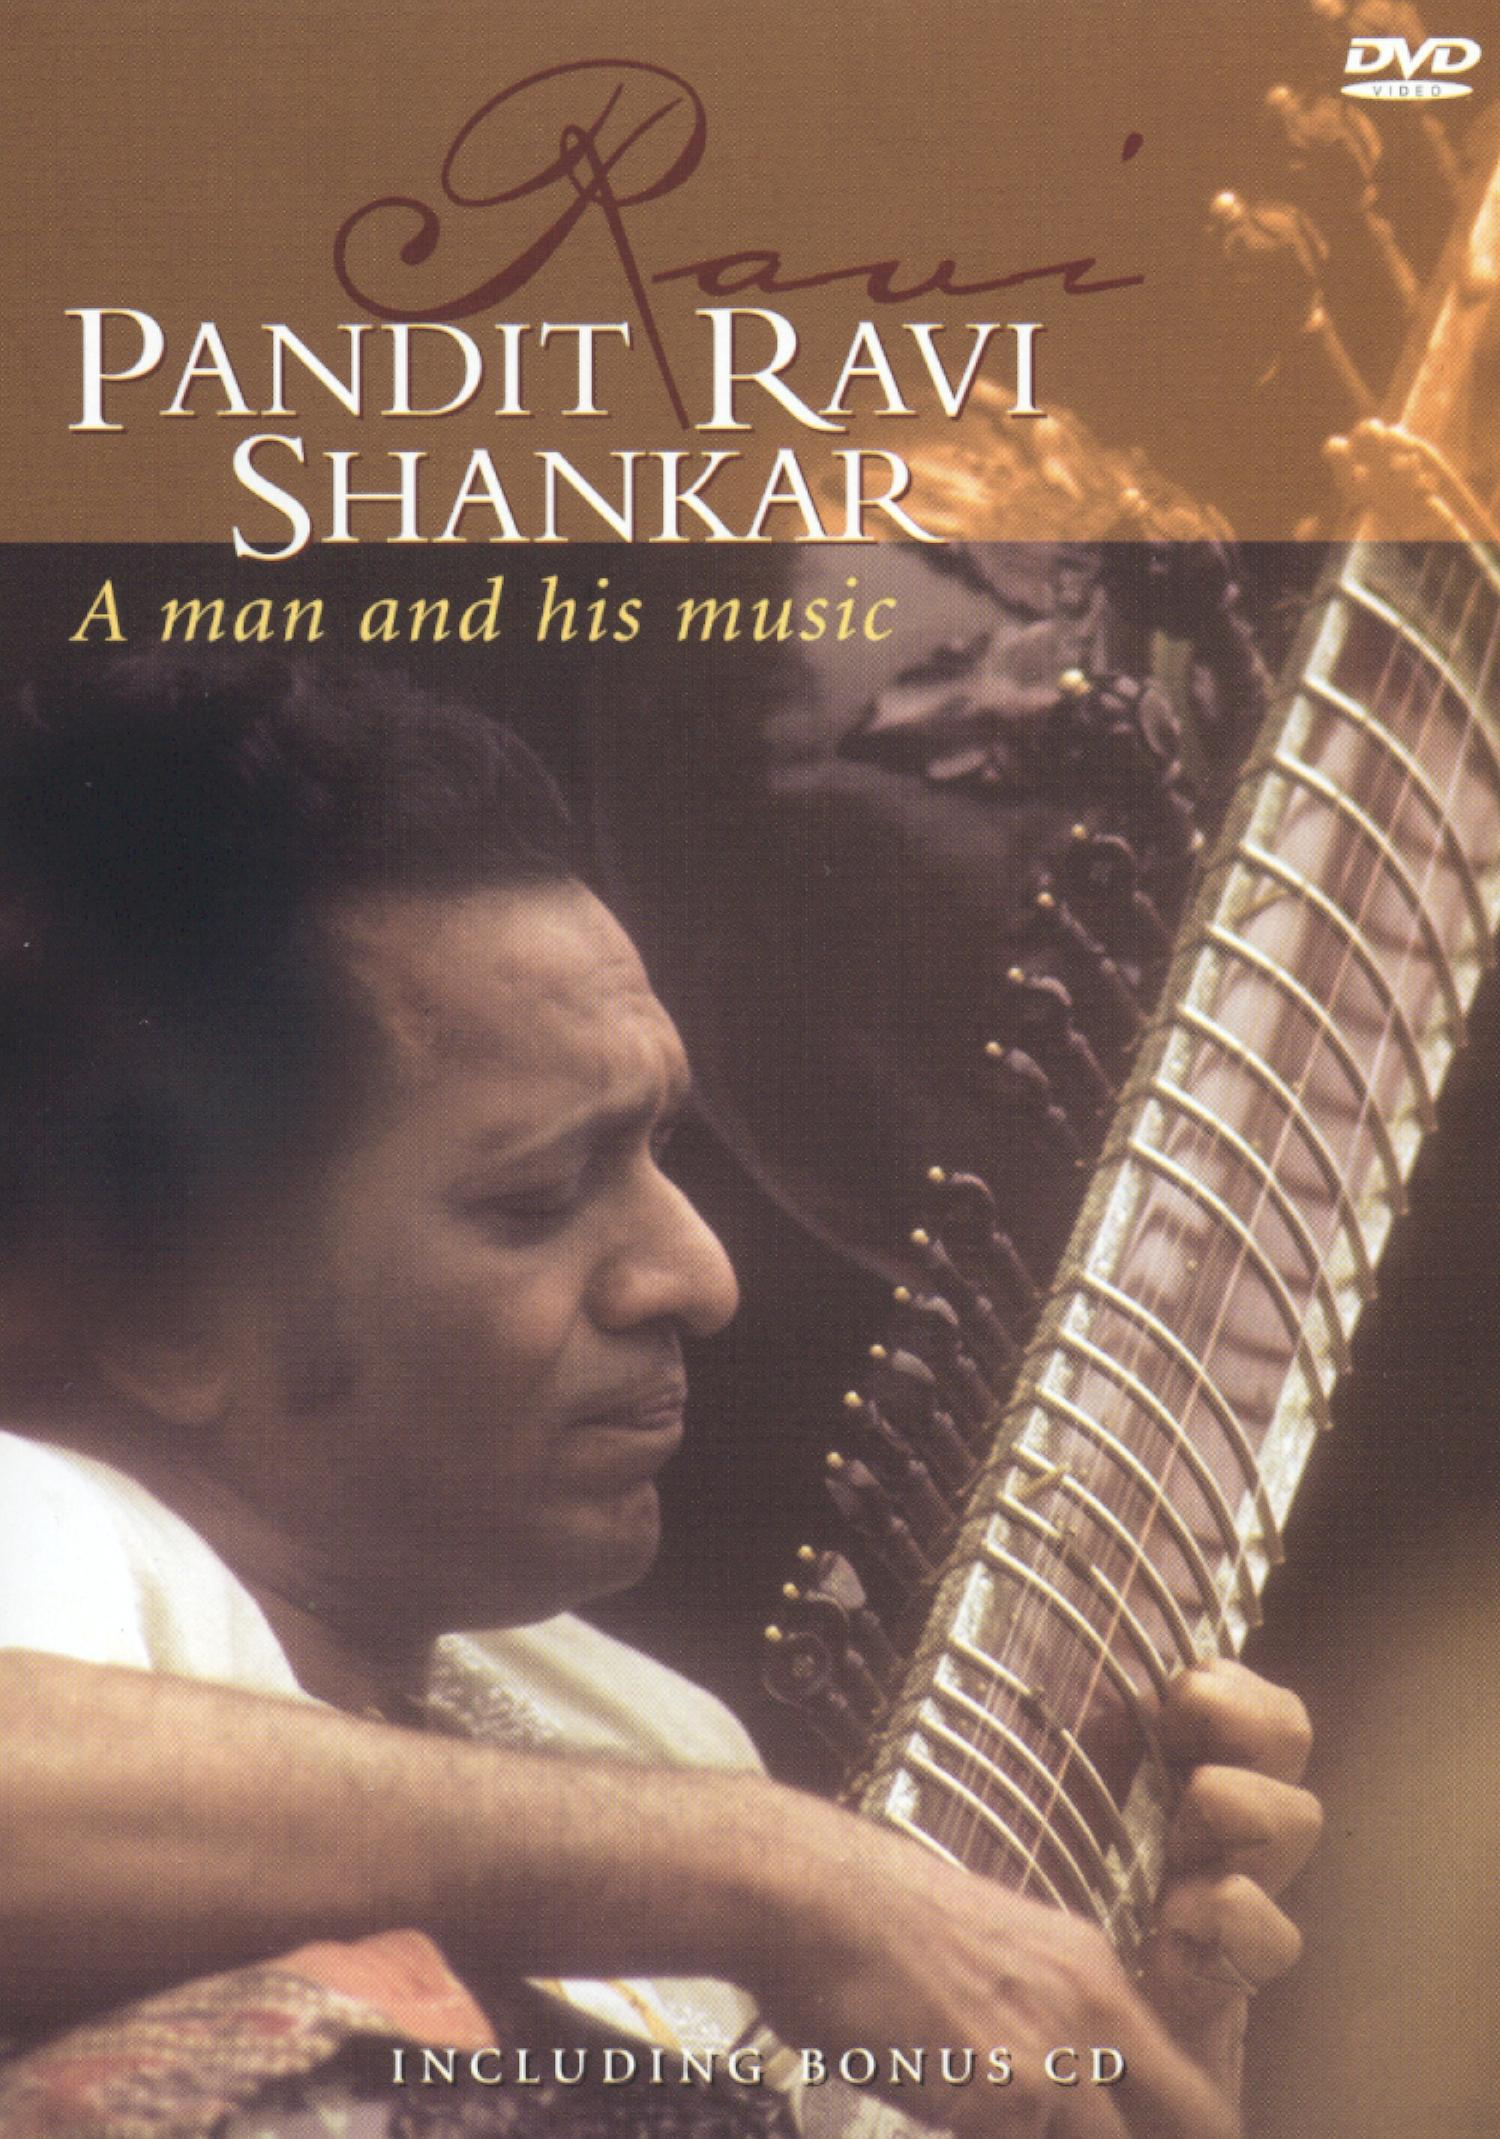 Pandit Ravi Shankar: A Man and His Music